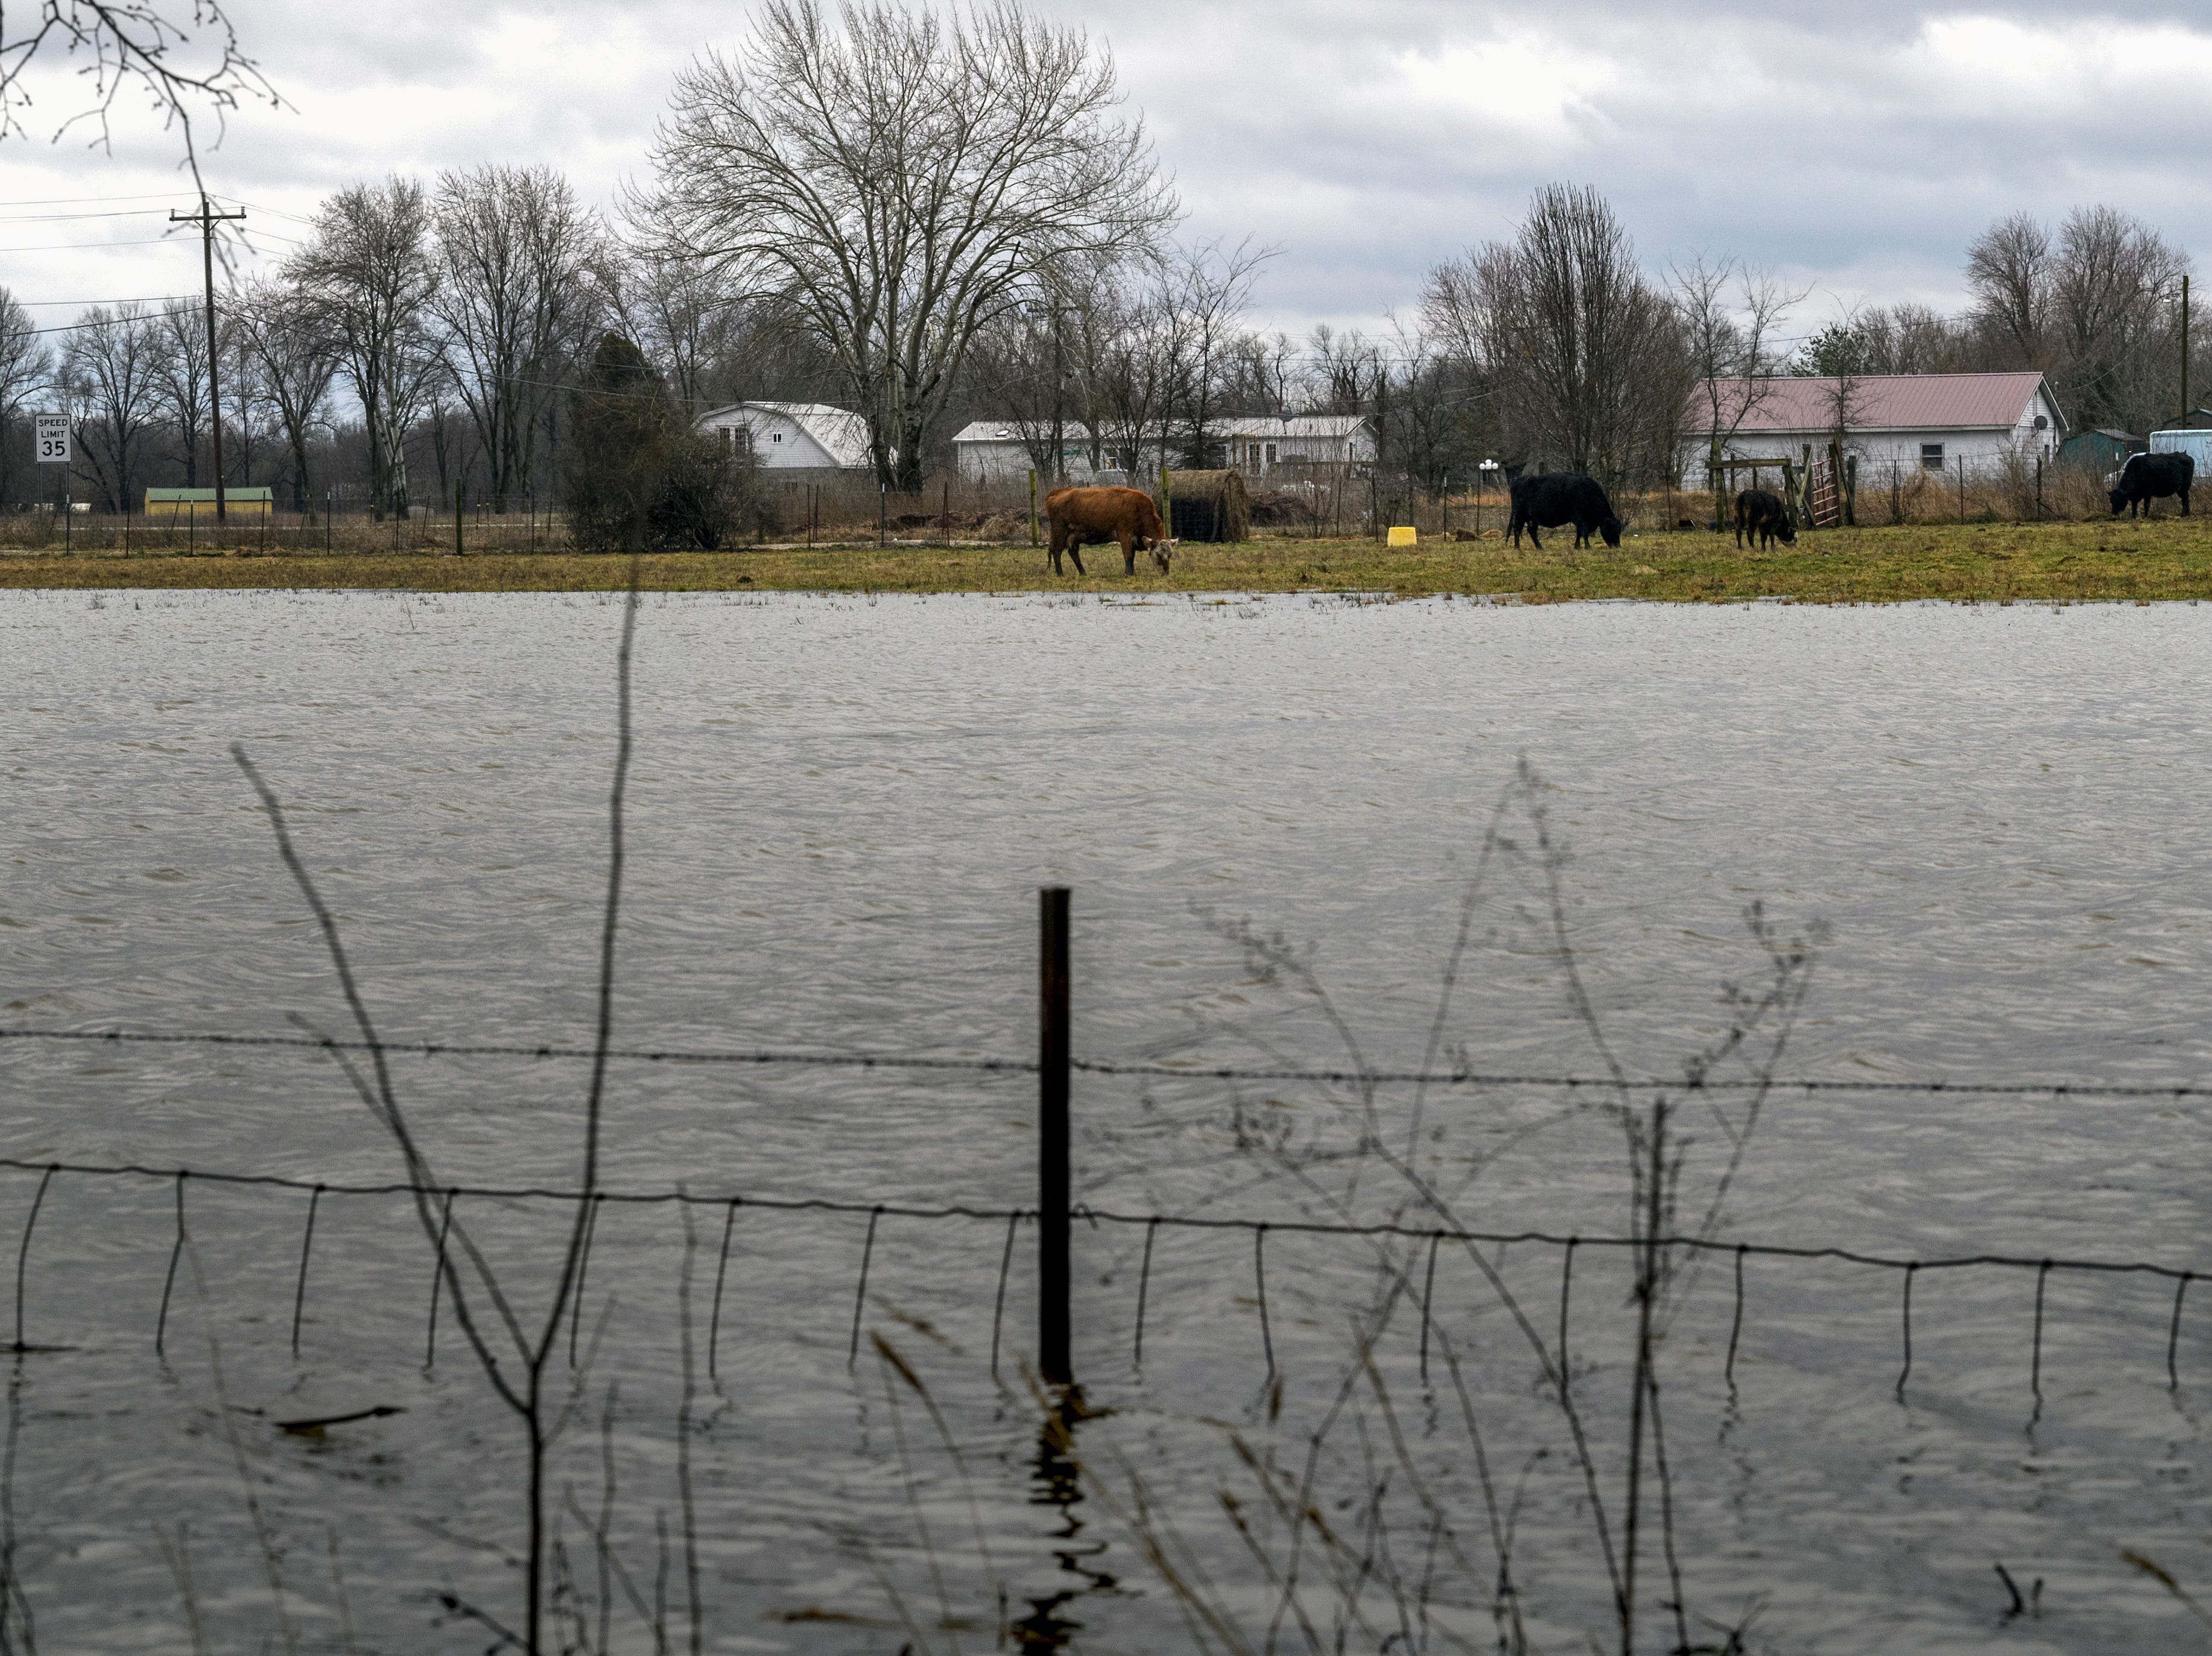 Cows graze as flooding begins to happen along West Pikes Landing Rd and KY-811 in Reed, Ky., Tuesday, Feb. 12, 2019. As of early Tuesday afternoon, the Ohio River at Evansville was measured to be 41 feet, one foot below flood stage, and the current forecast calls for the river to crest on Sunday at close to 44 feet.